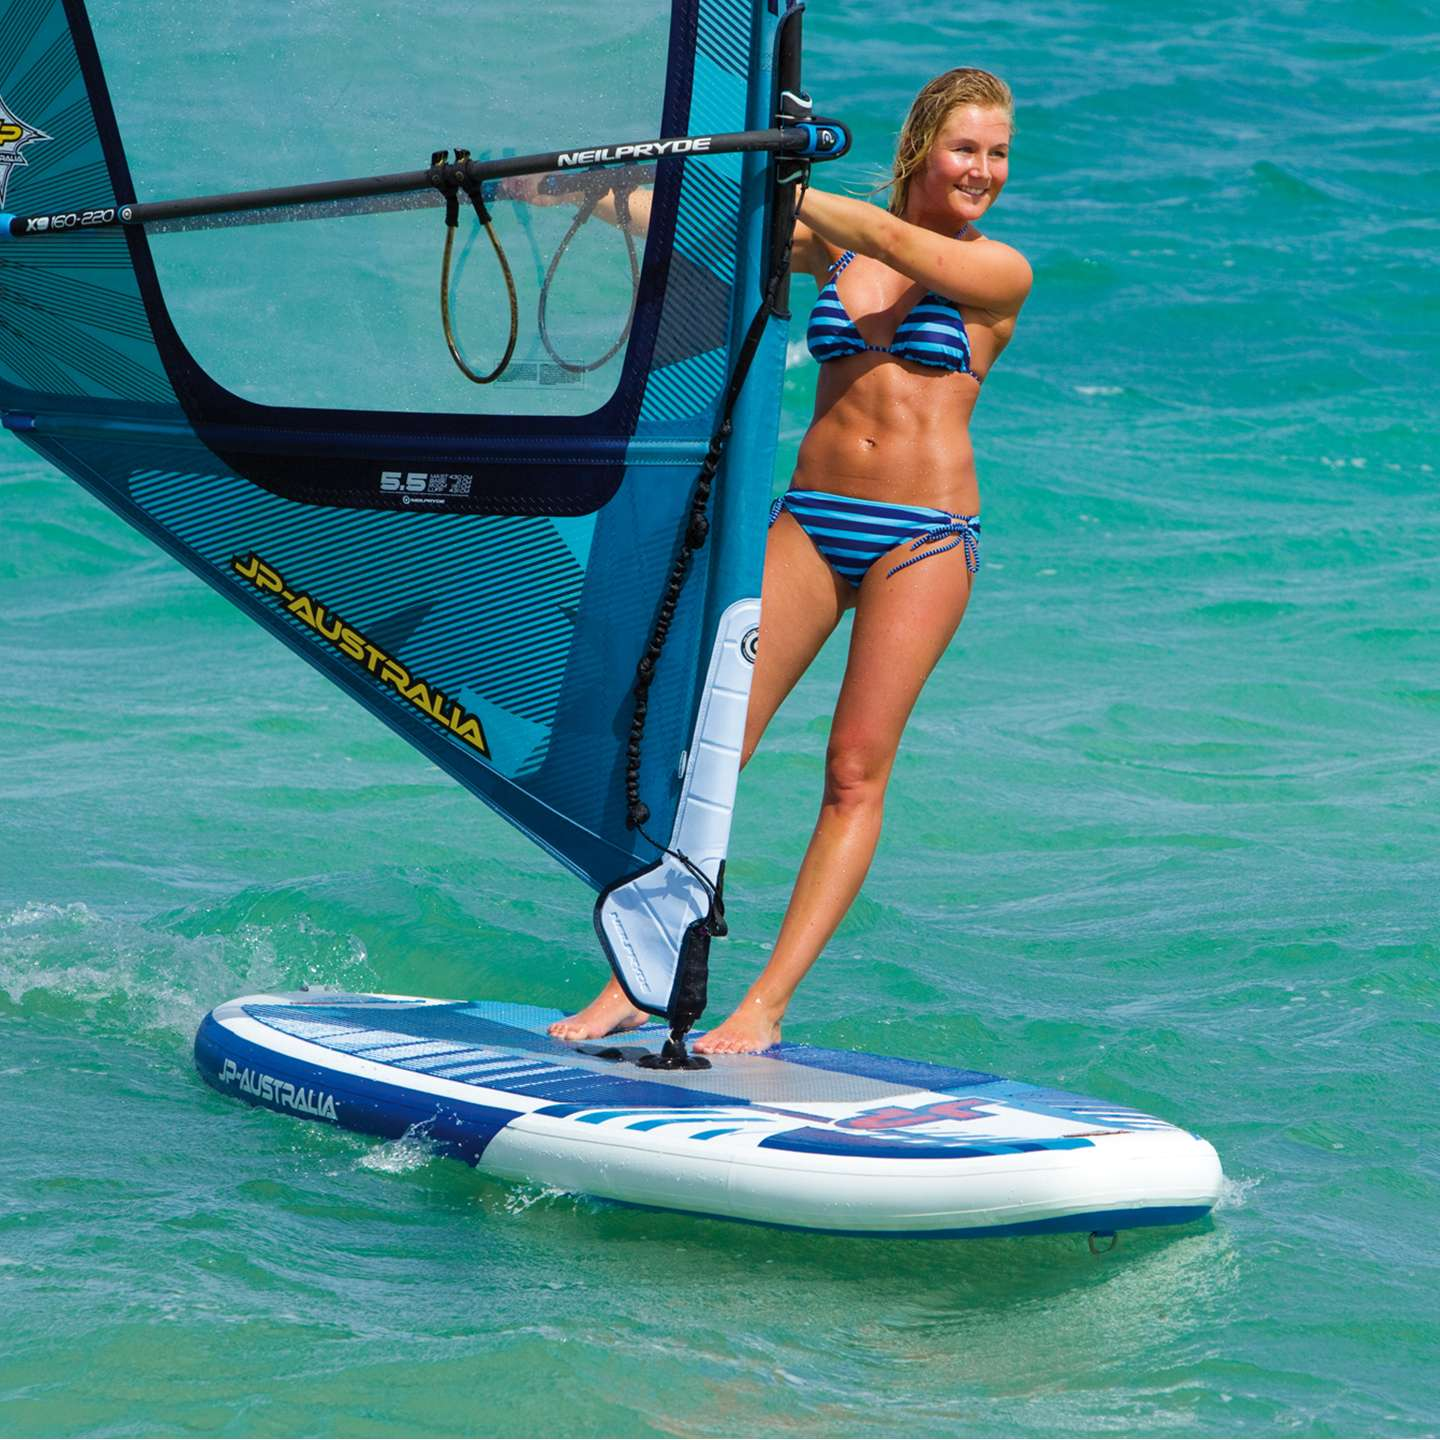 Wakeboards For Sale >> JP Funstair Inflatable Windsurf Board 2015 | King of ...